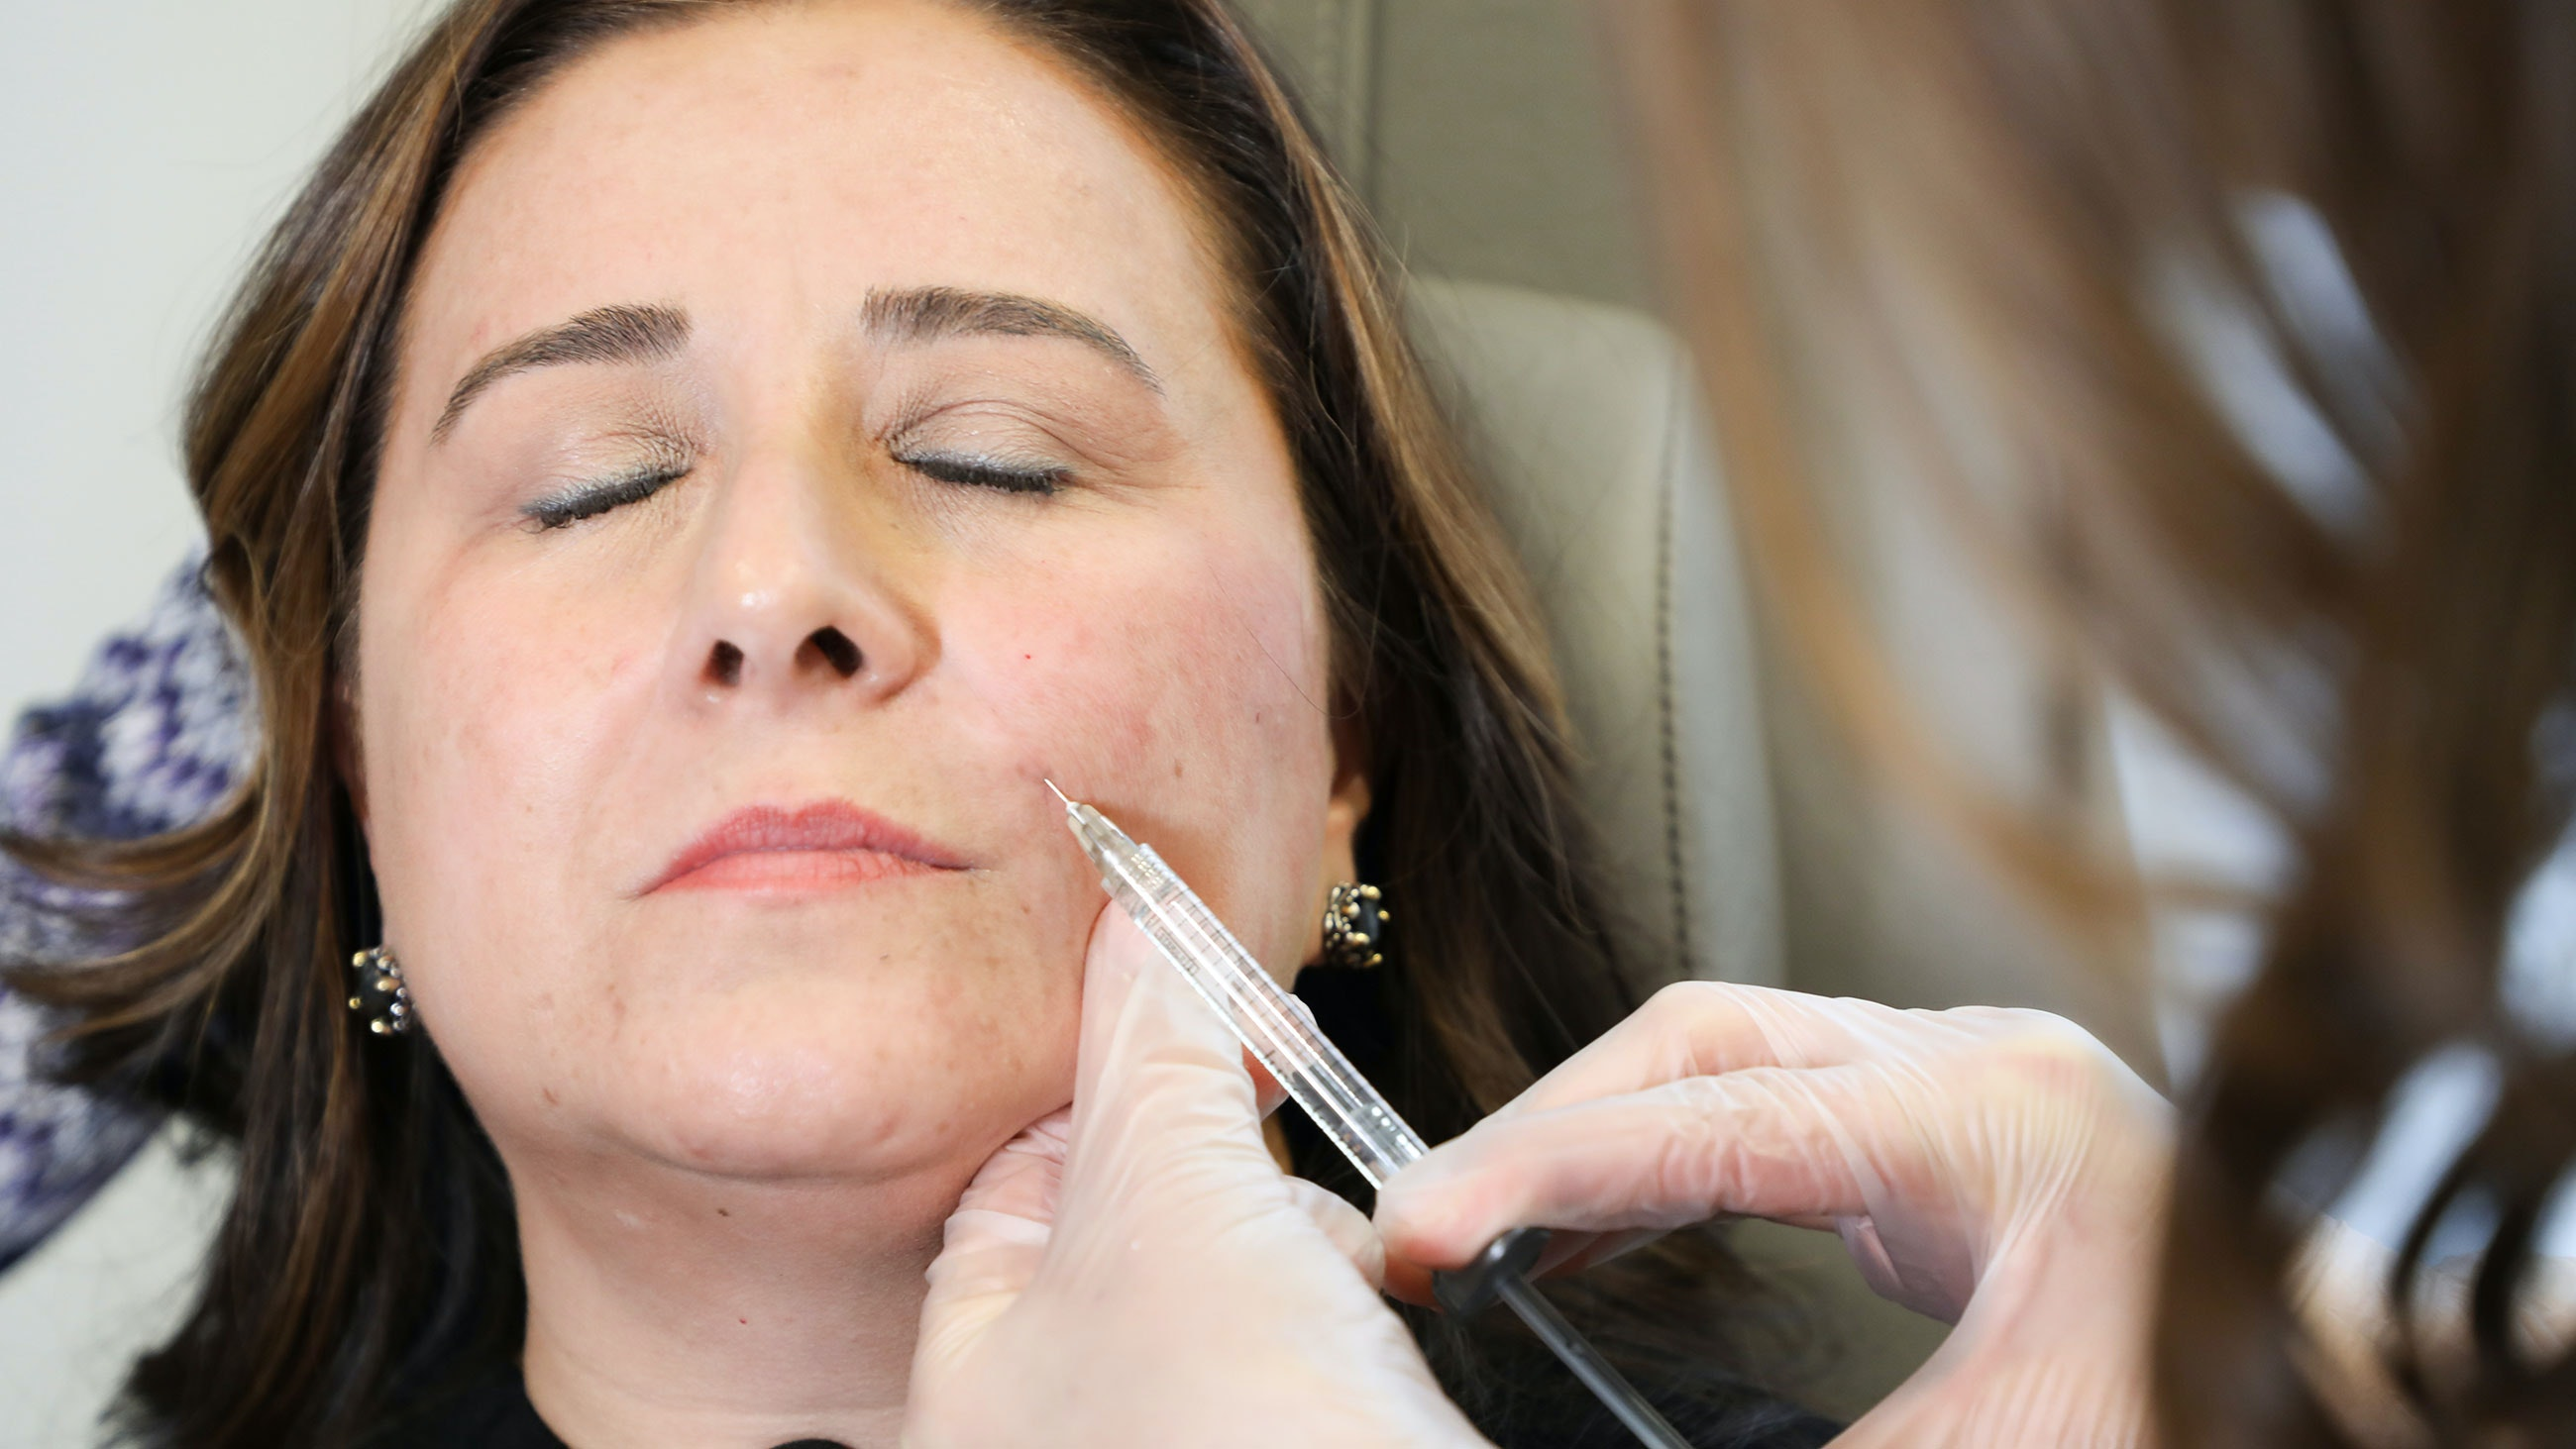 sonia getting her laugh lines injected